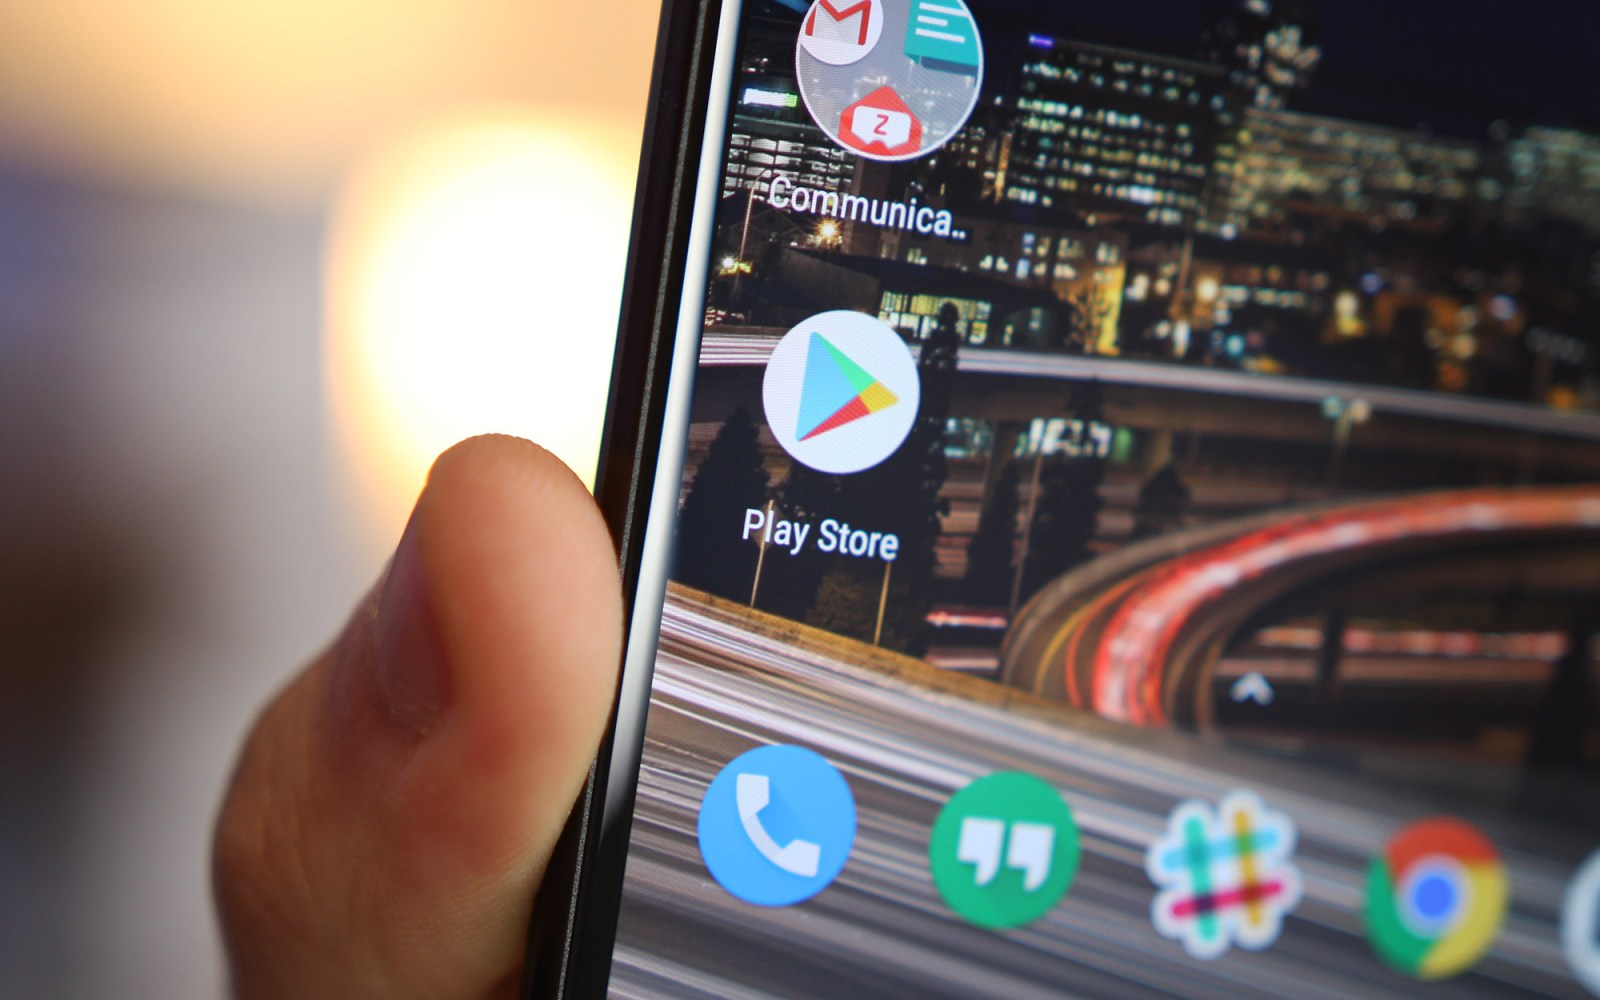 Google is testing a refreshed Play Store UI and it's now appearing for some users